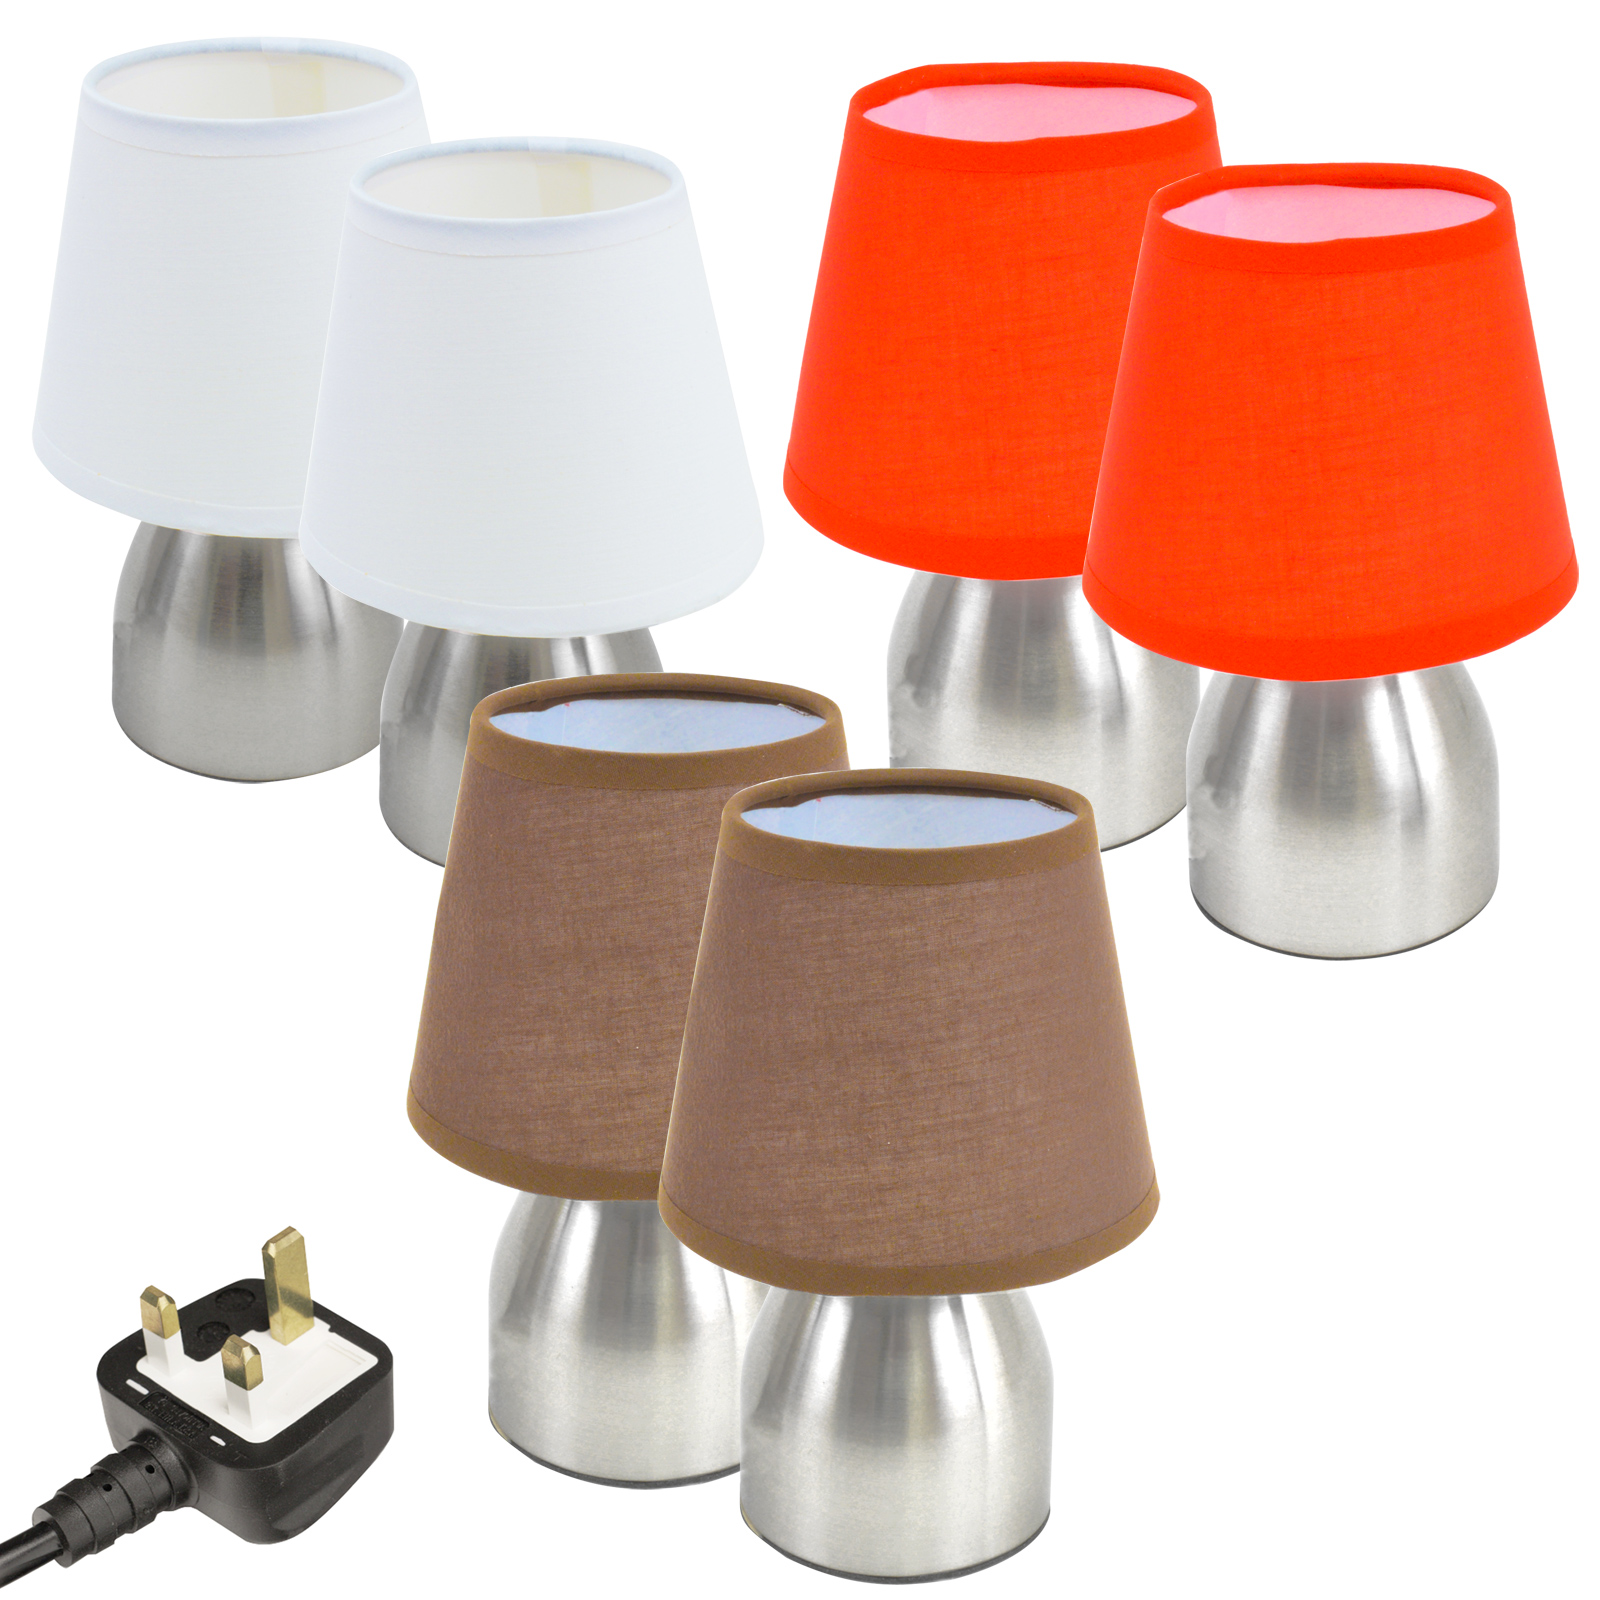 Touch Dimmable Lamps Touch Lamps Lights Light Small Compact Bedside Set Of 2